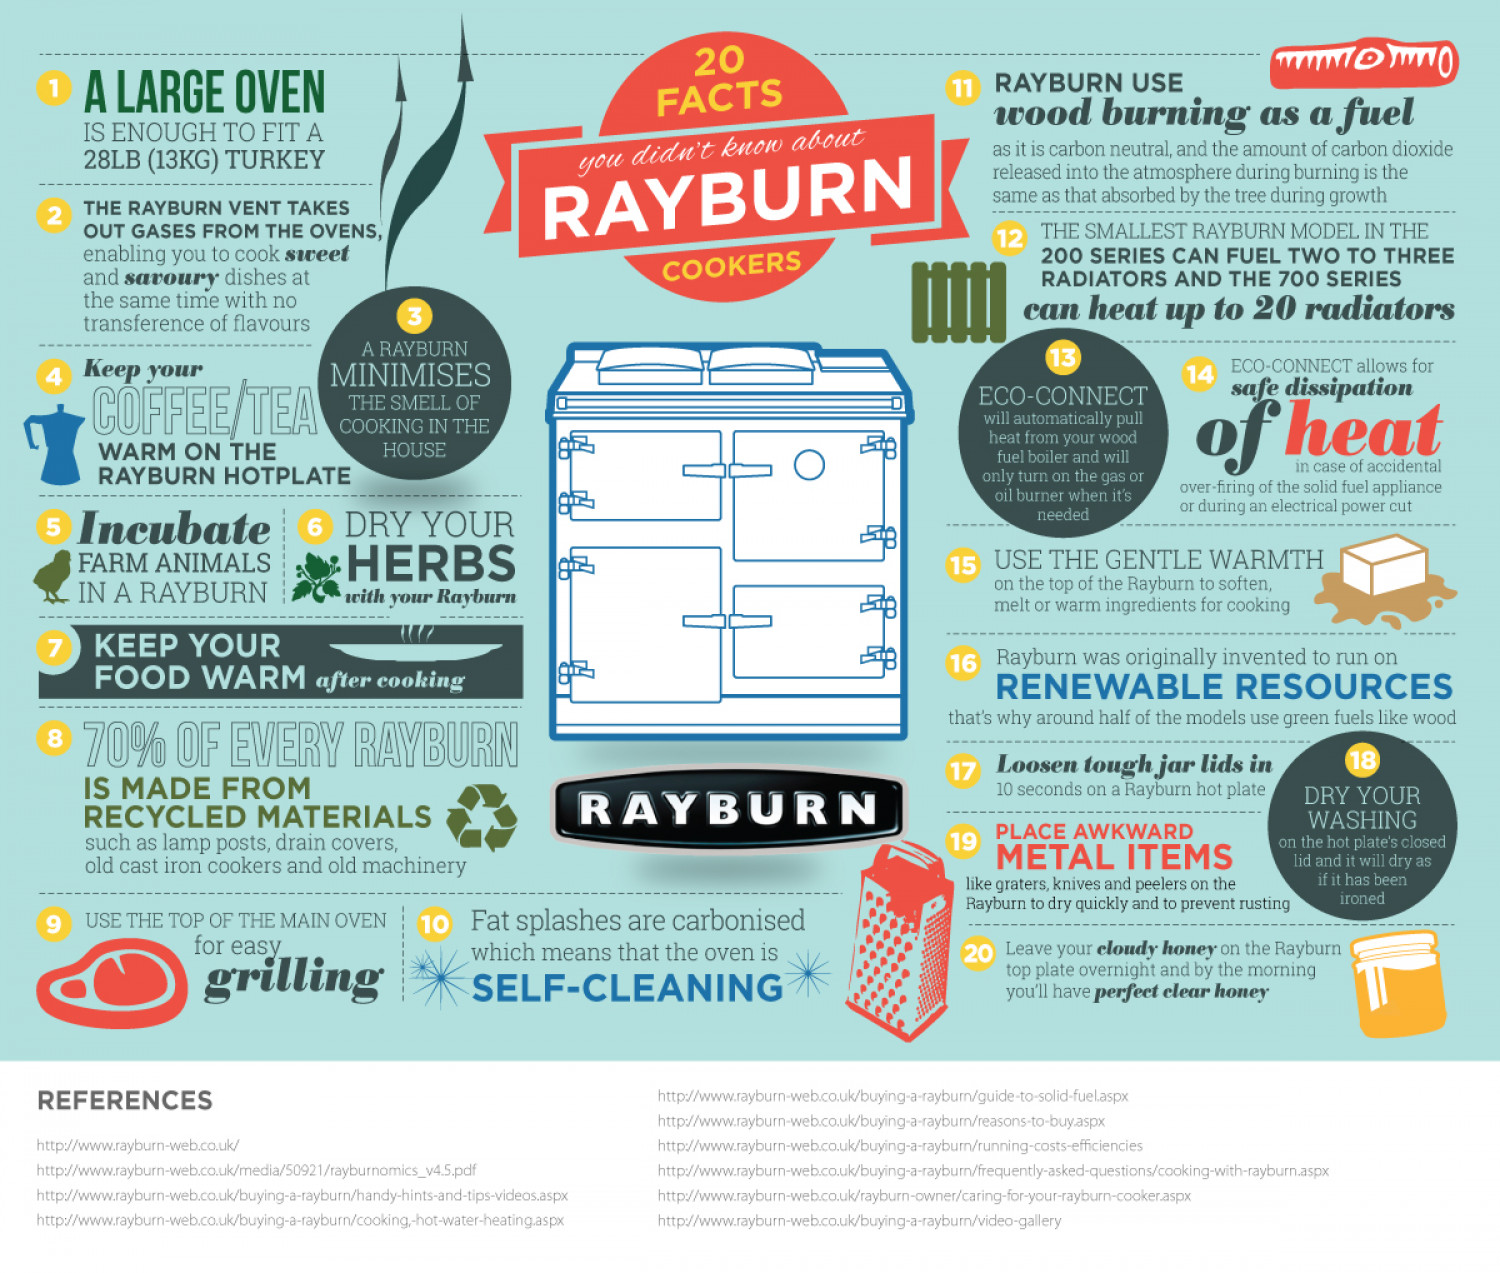 20 Facts You Didn't Know About Rayburn Cookers Infographic